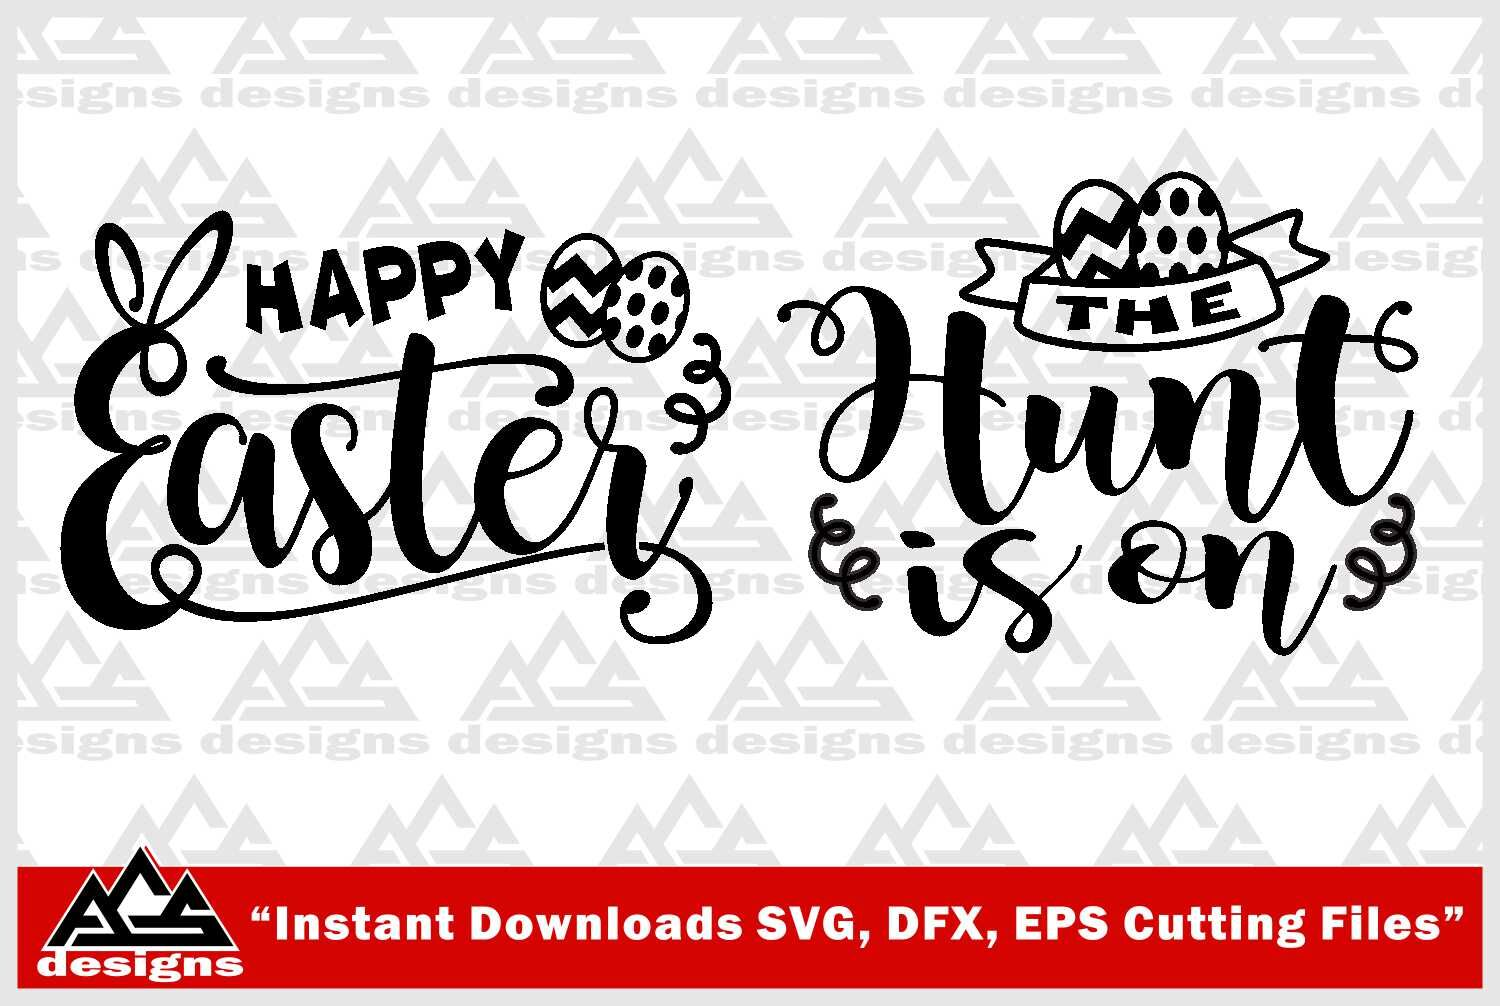 Happy Easter Svg Design By Agsdesign Thehungryjpeg Com